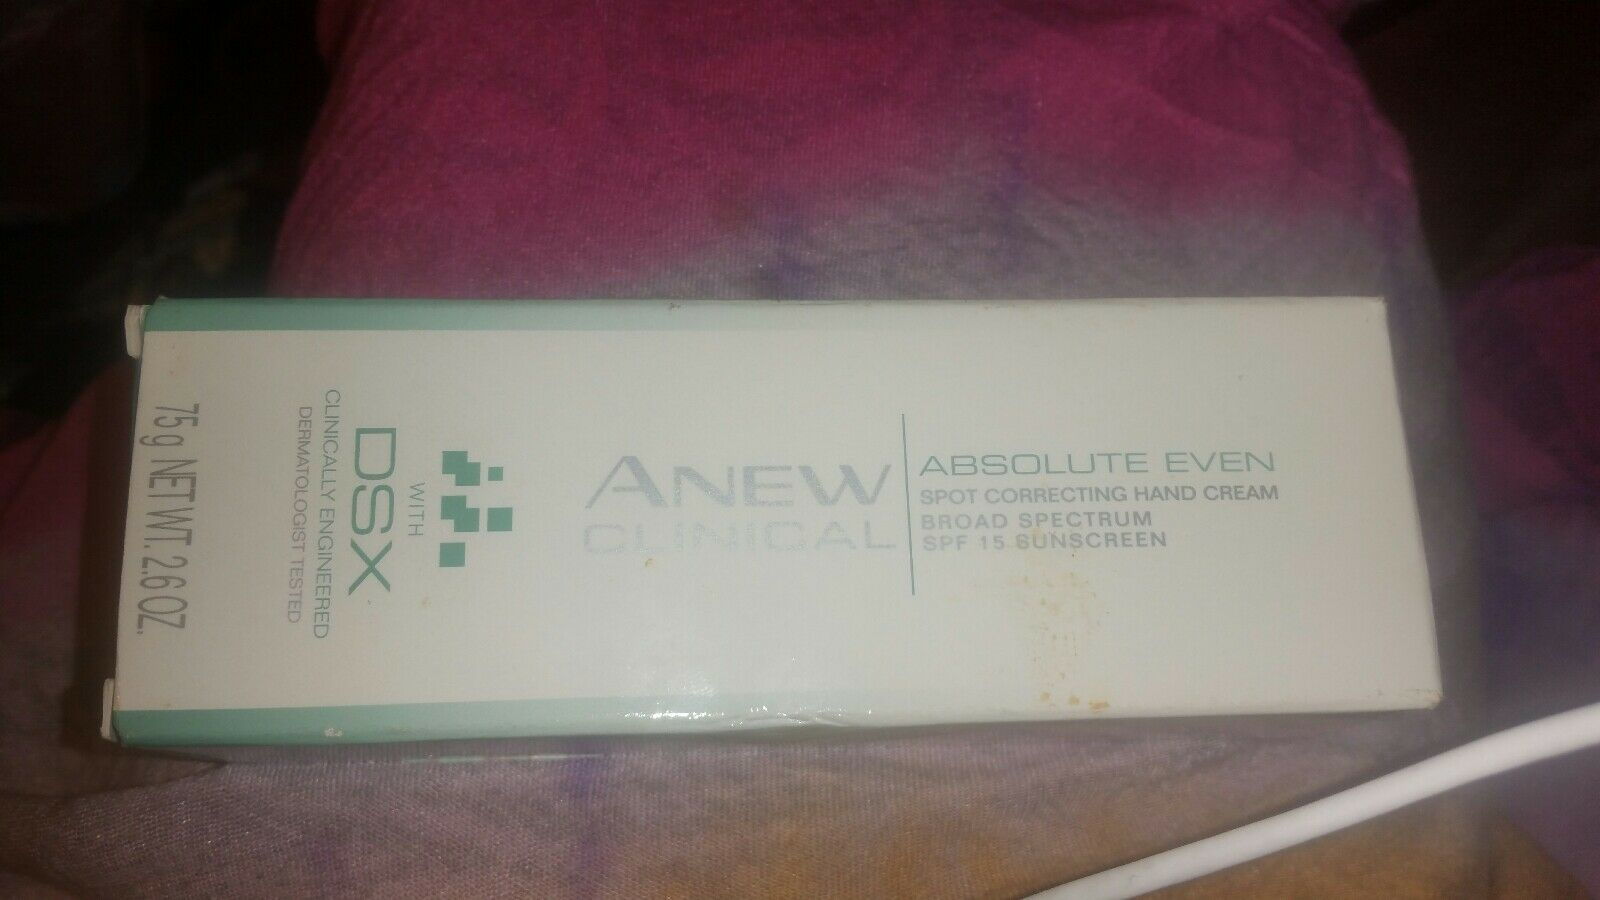 Avon Anew Clinical Absolute Even  Spot Correcting Hand Cream Broad Spectrum SPF